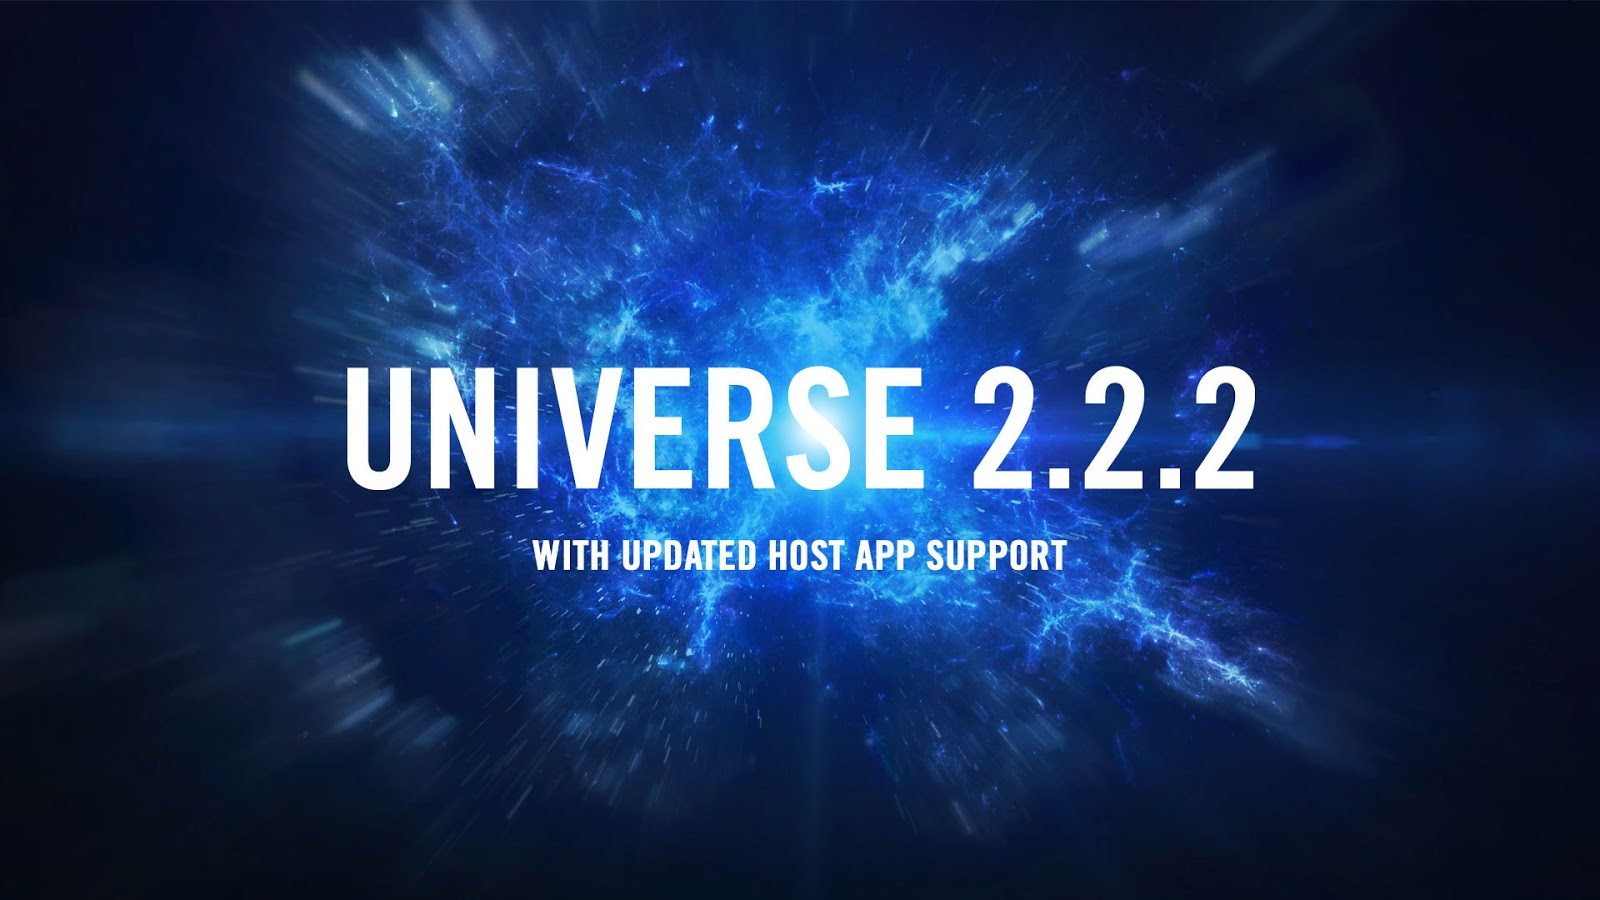 b2eead28c60c Red Giant Universe 3.0.2 for After Effects MAC + crack (FULL) If the first  link does not work